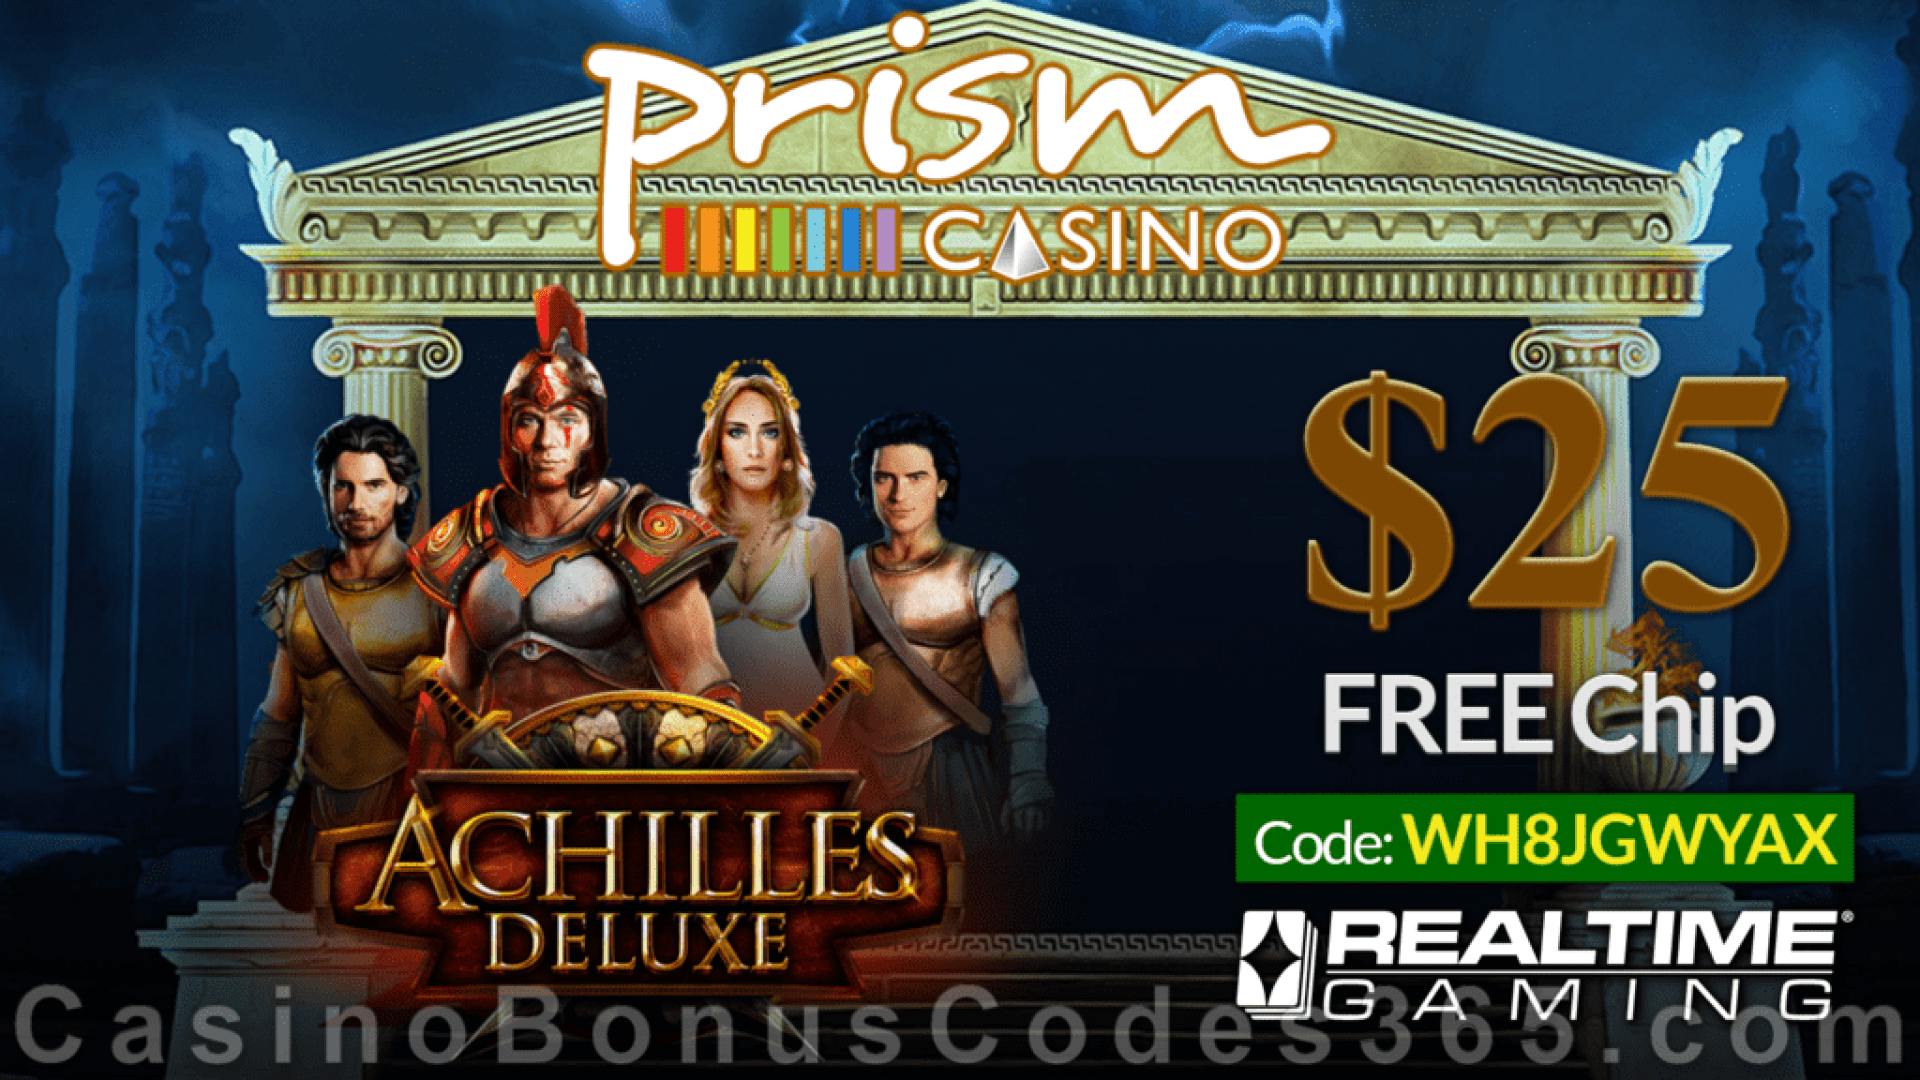 Prism Casino New RTG Game Achilles Deluxe $25 FREE Chip No Deposit Special Offer